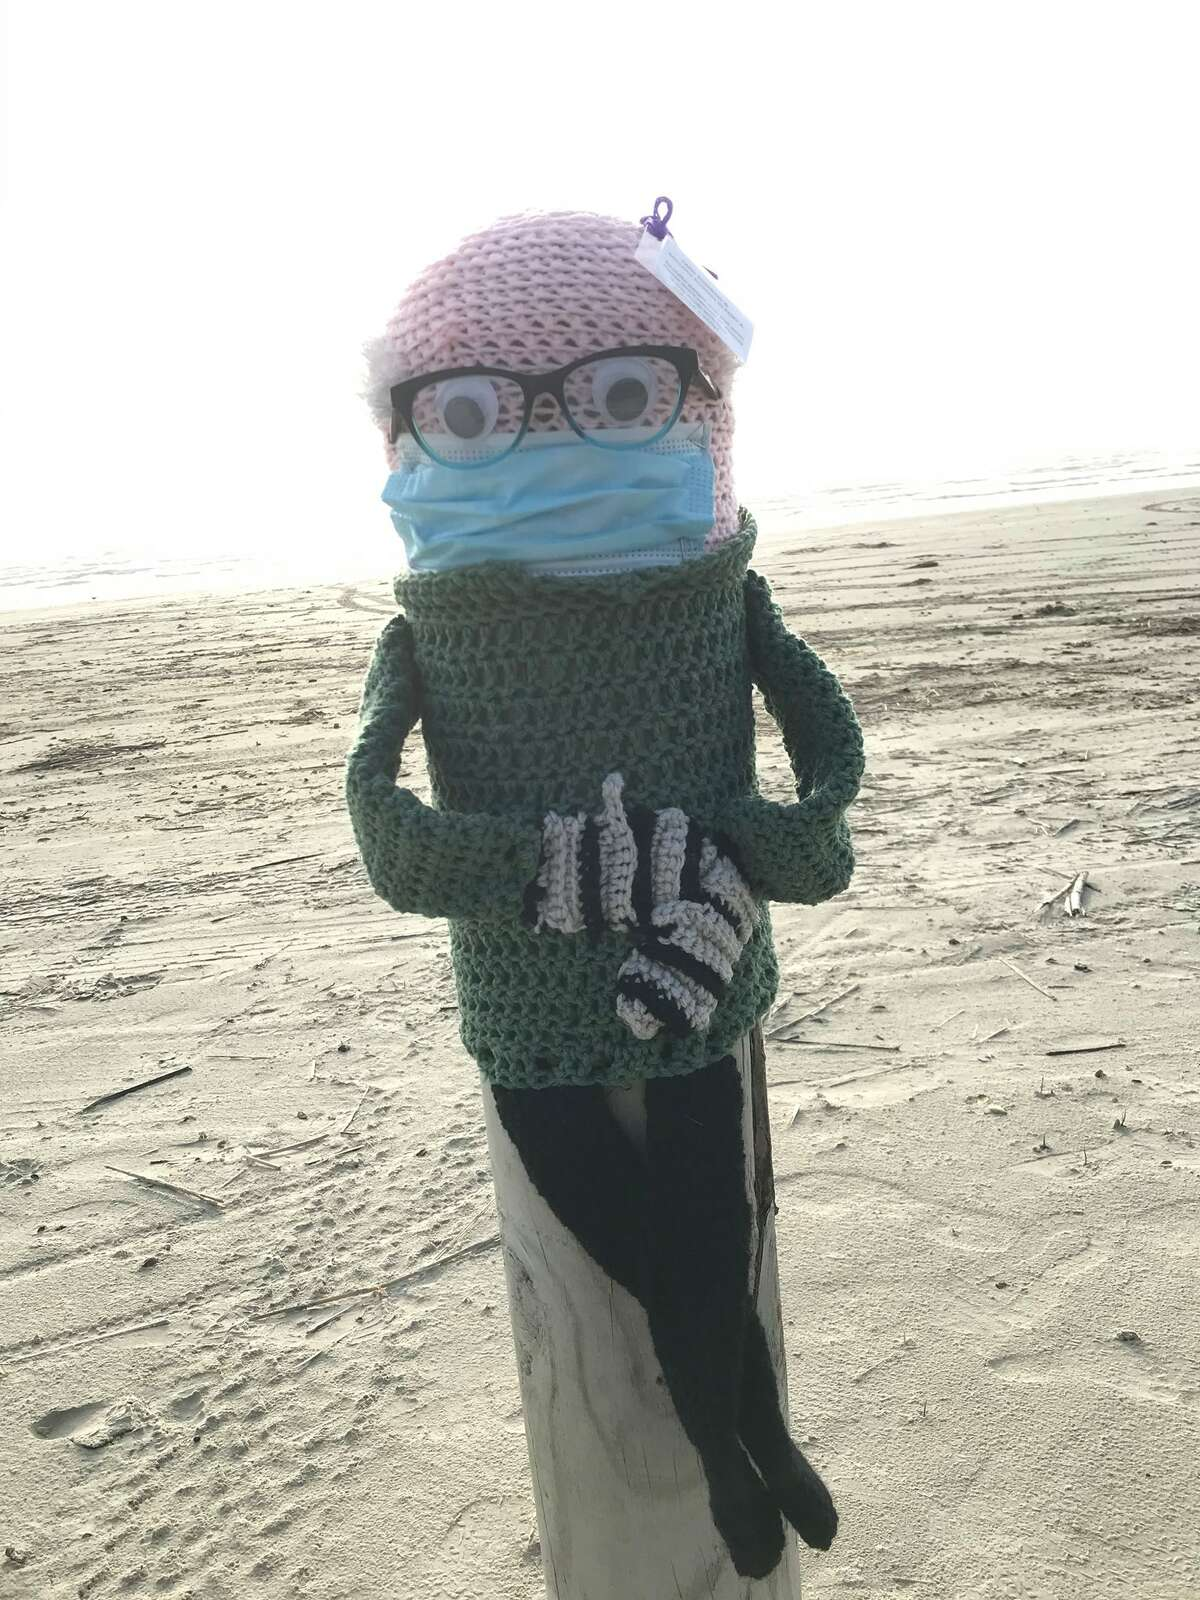 You can now find the meme of Vermont Senator Bernie Sanders and his viral hand-knit mittens crocheted on a bollard, vertical posts used to control traffic and mark boundaries, at Port Aransas beach.